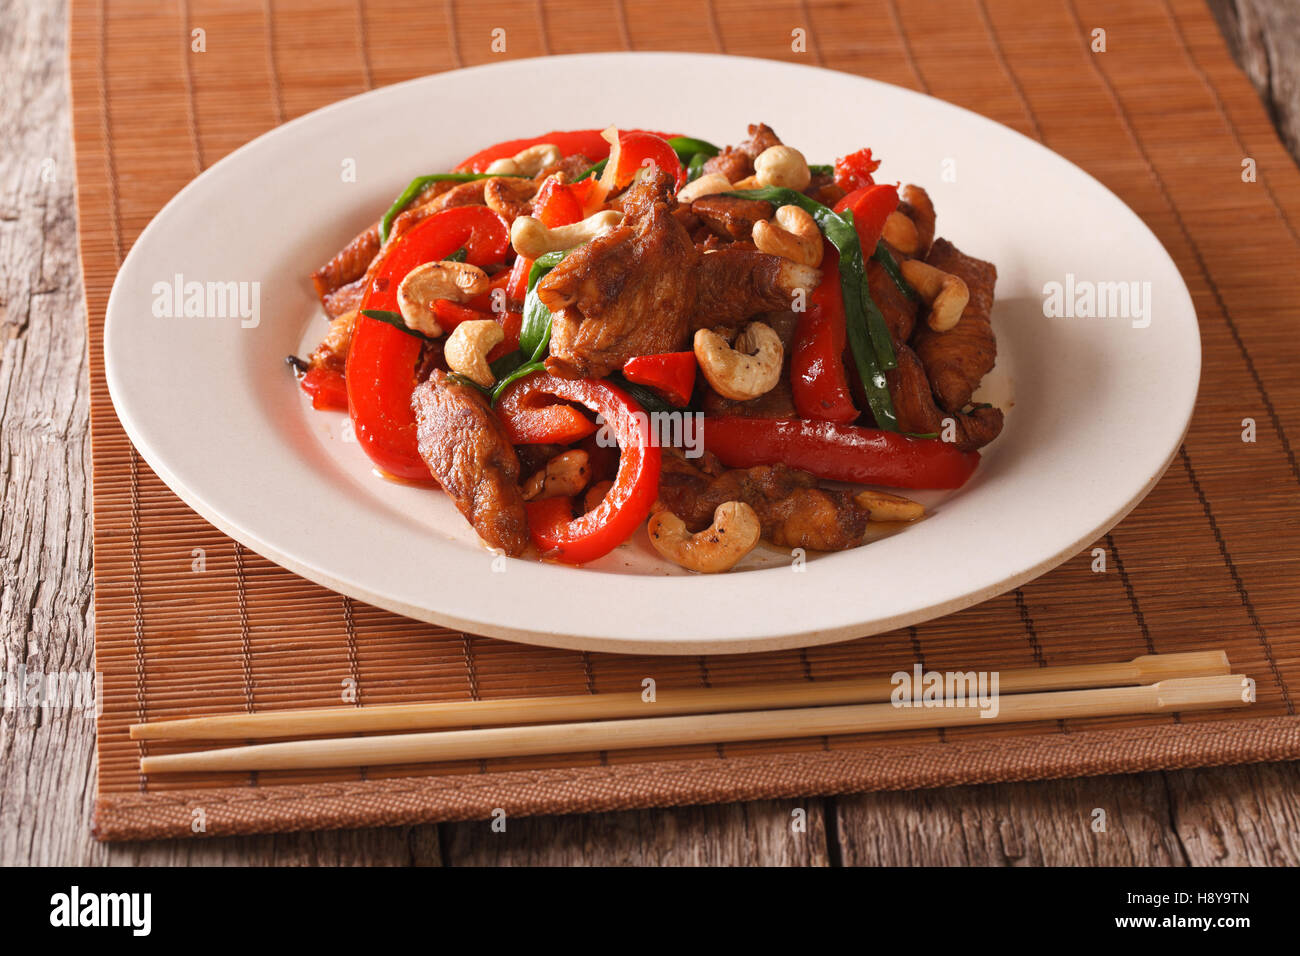 Thai Food: Fried chicken with vegetables and cashew nuts closeup on a plate on the table. horizontal - Stock Image